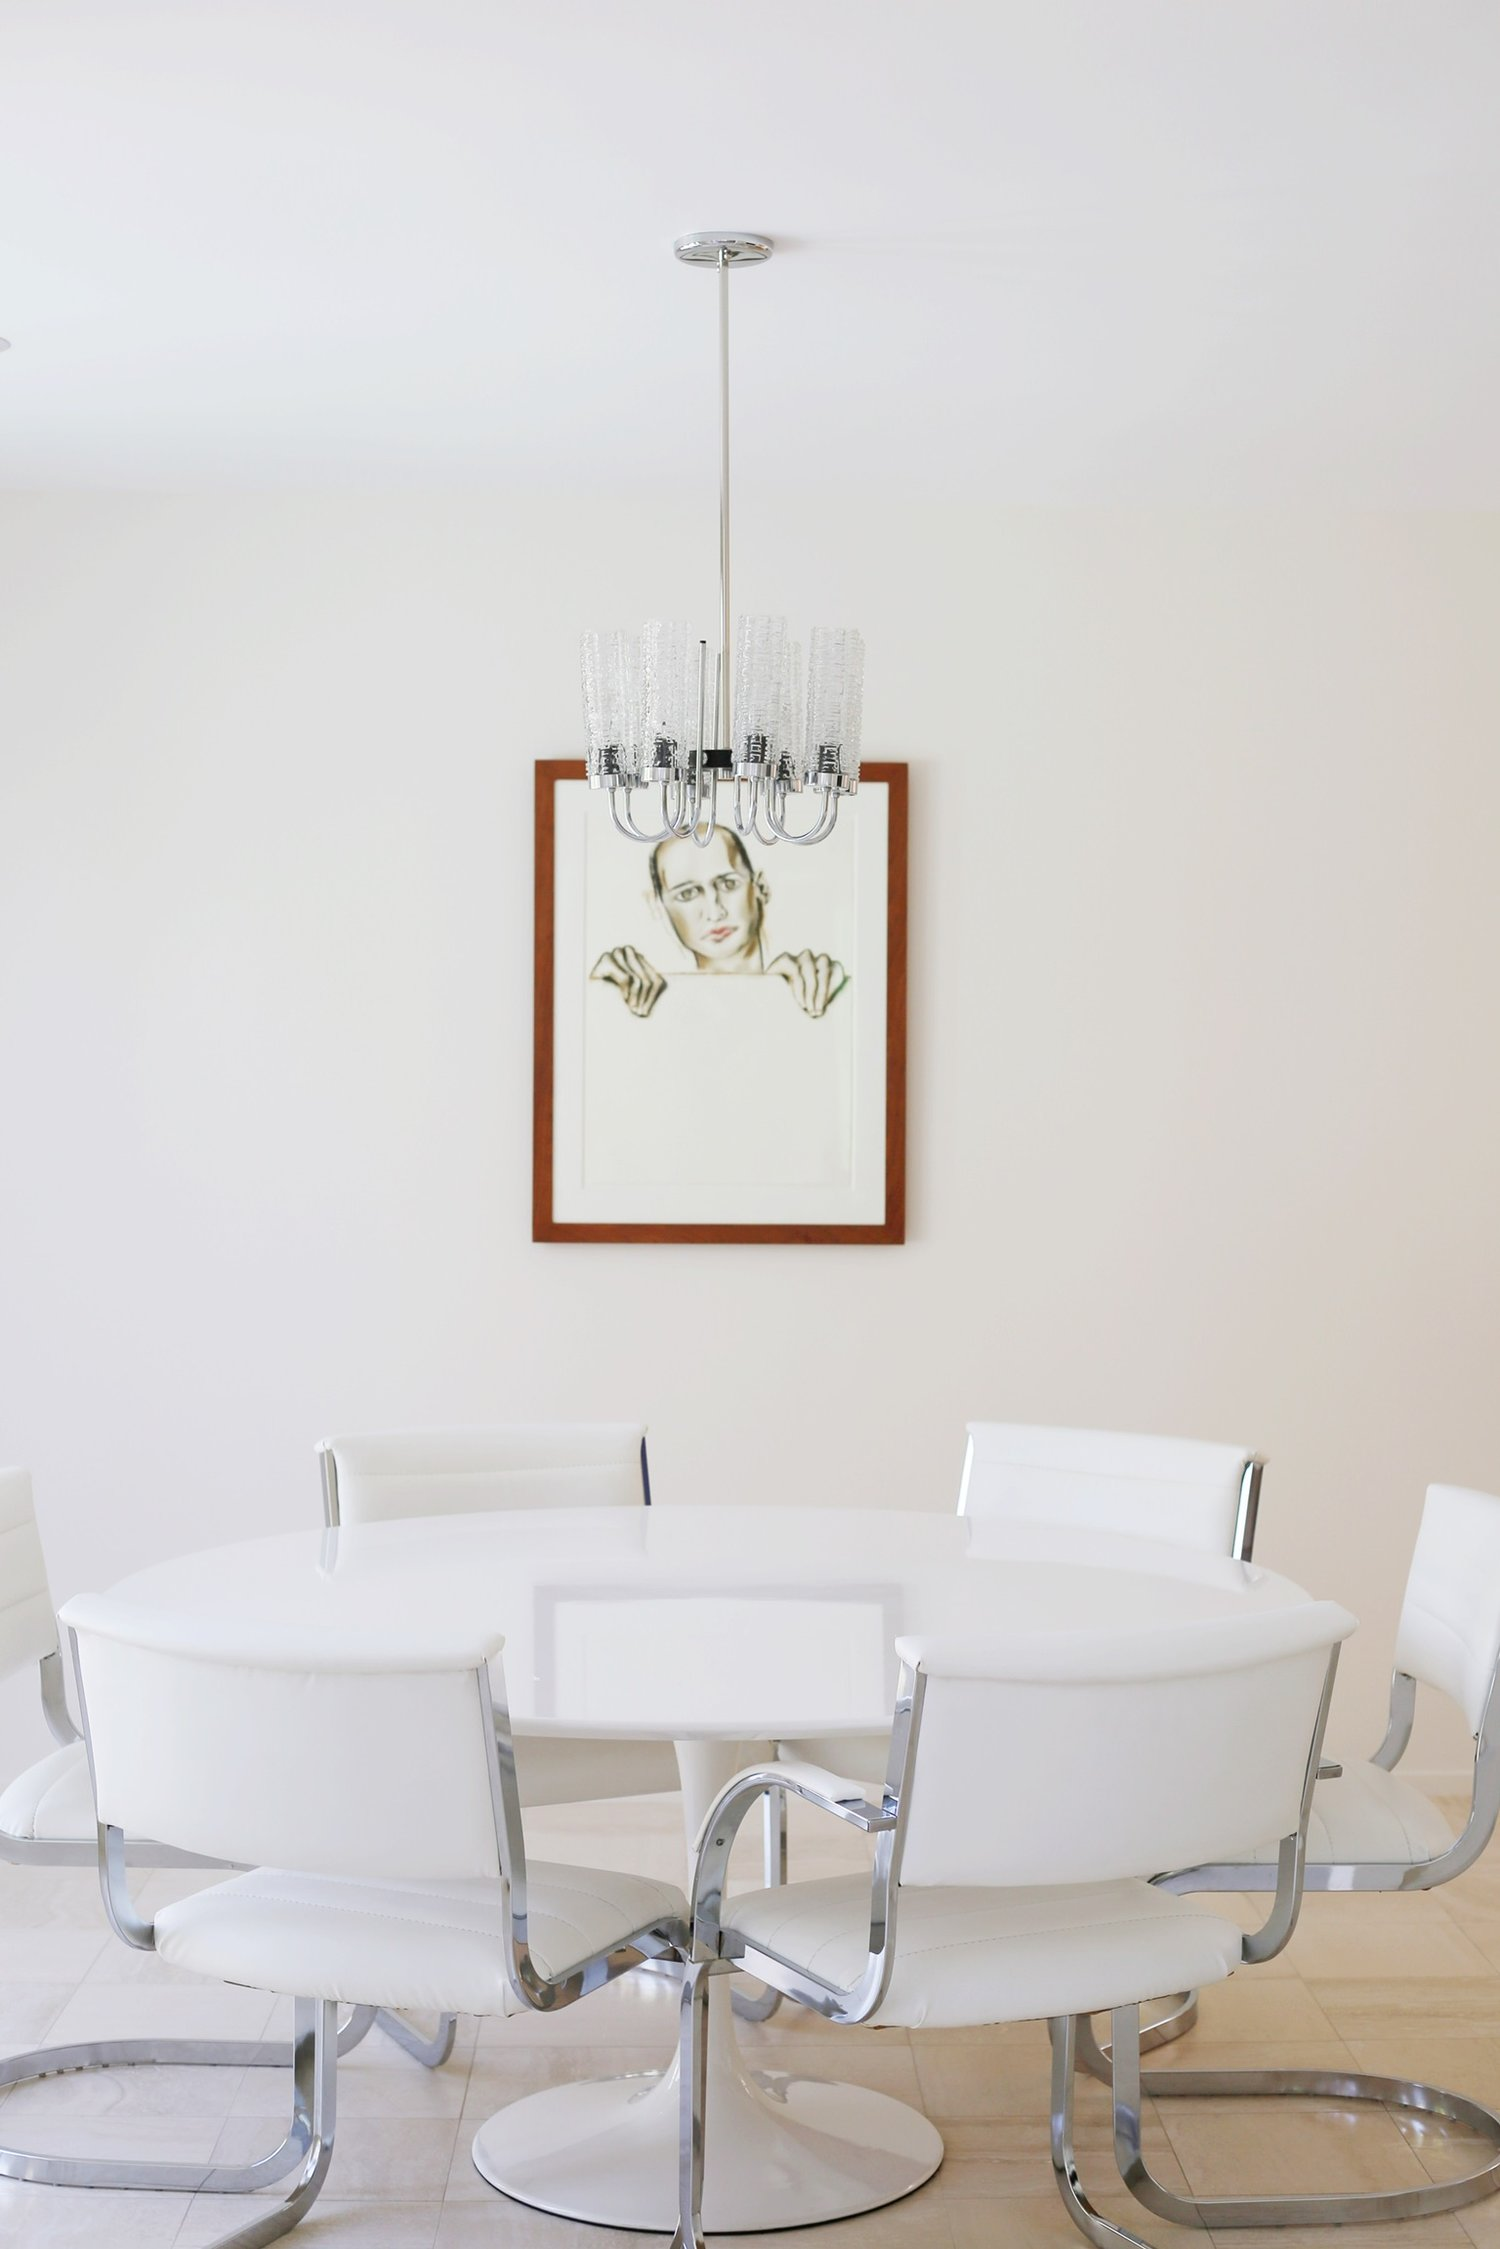 Knoll Tulip Table with painting by Francesco Clemente by 1995, pastel on paper.